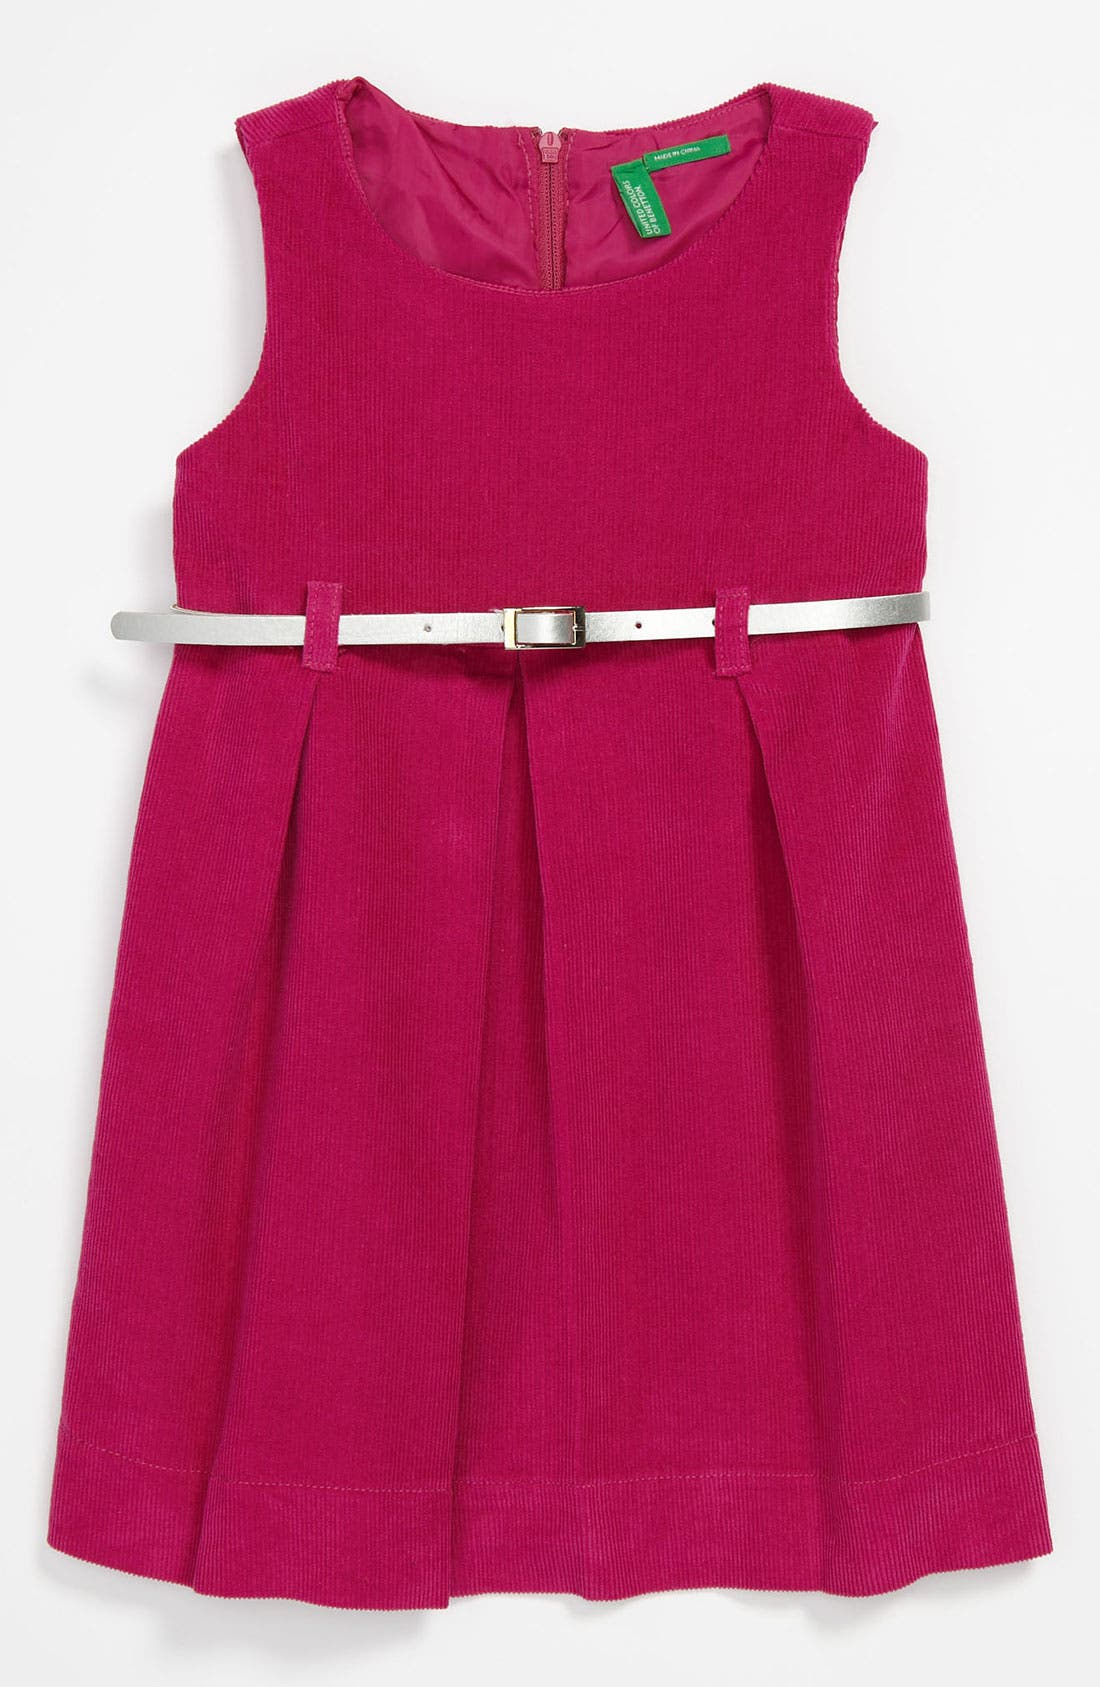 Alternate Image 1 Selected - United Colors of Benetton Corduroy Dress (Toddler)